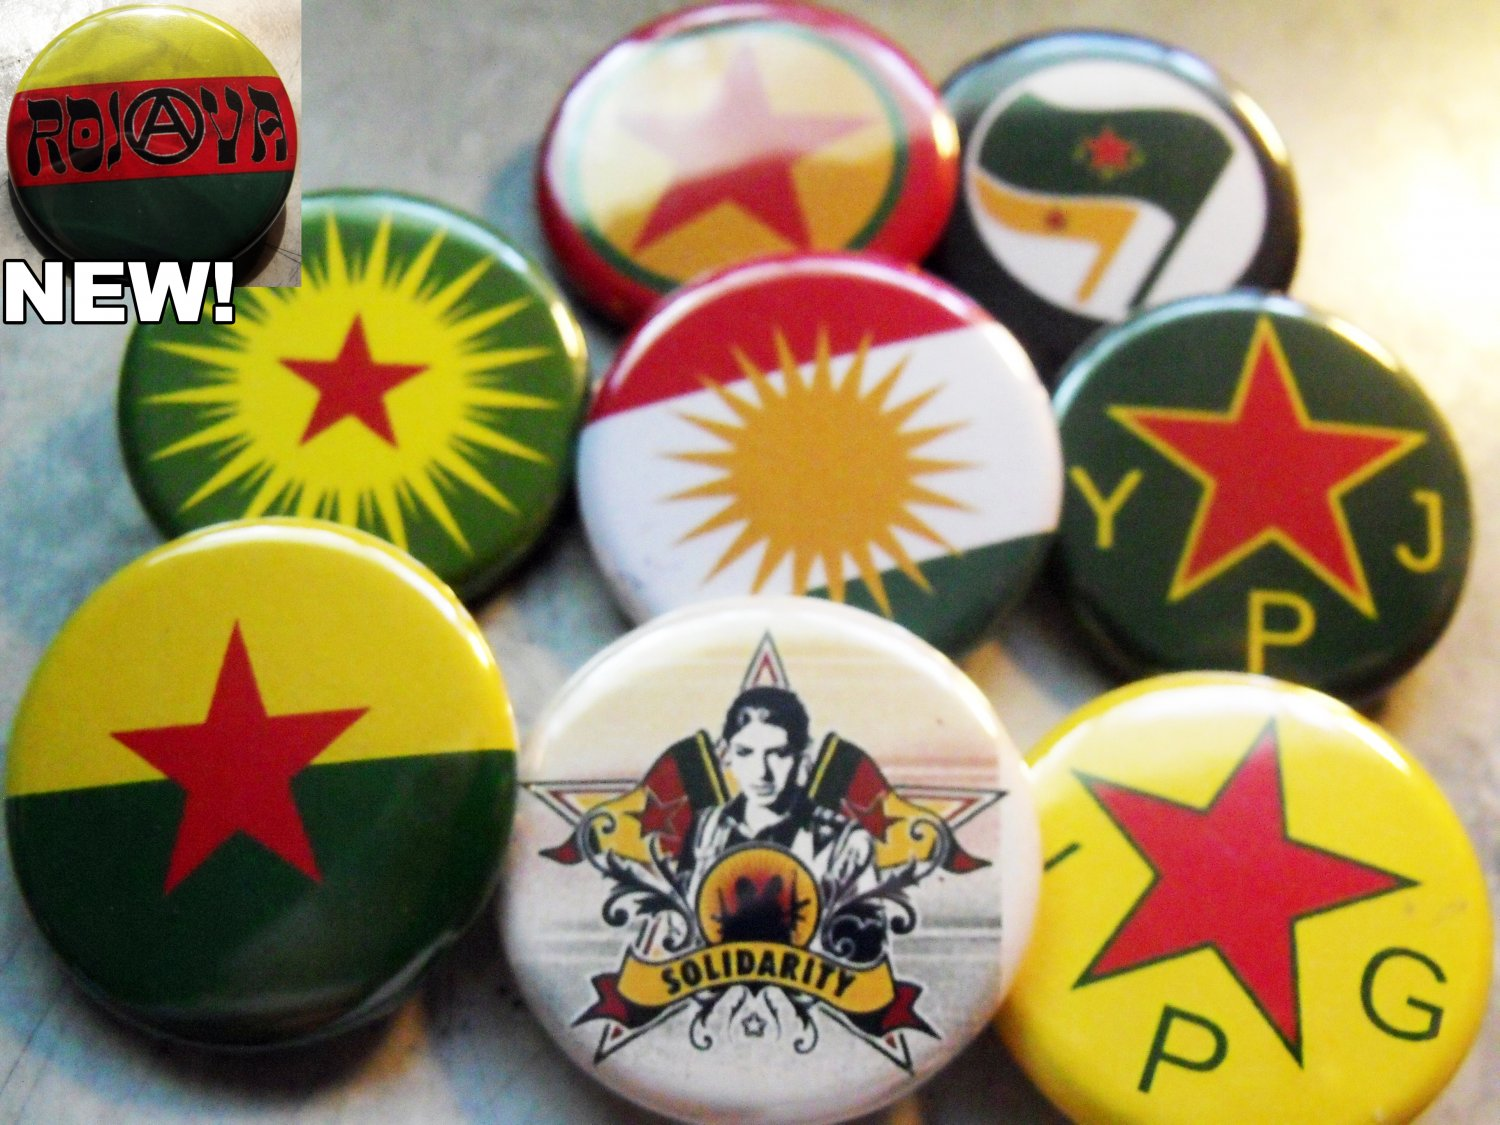 9 KURDISH RESISTANCE pinback buttons badges 1.25""